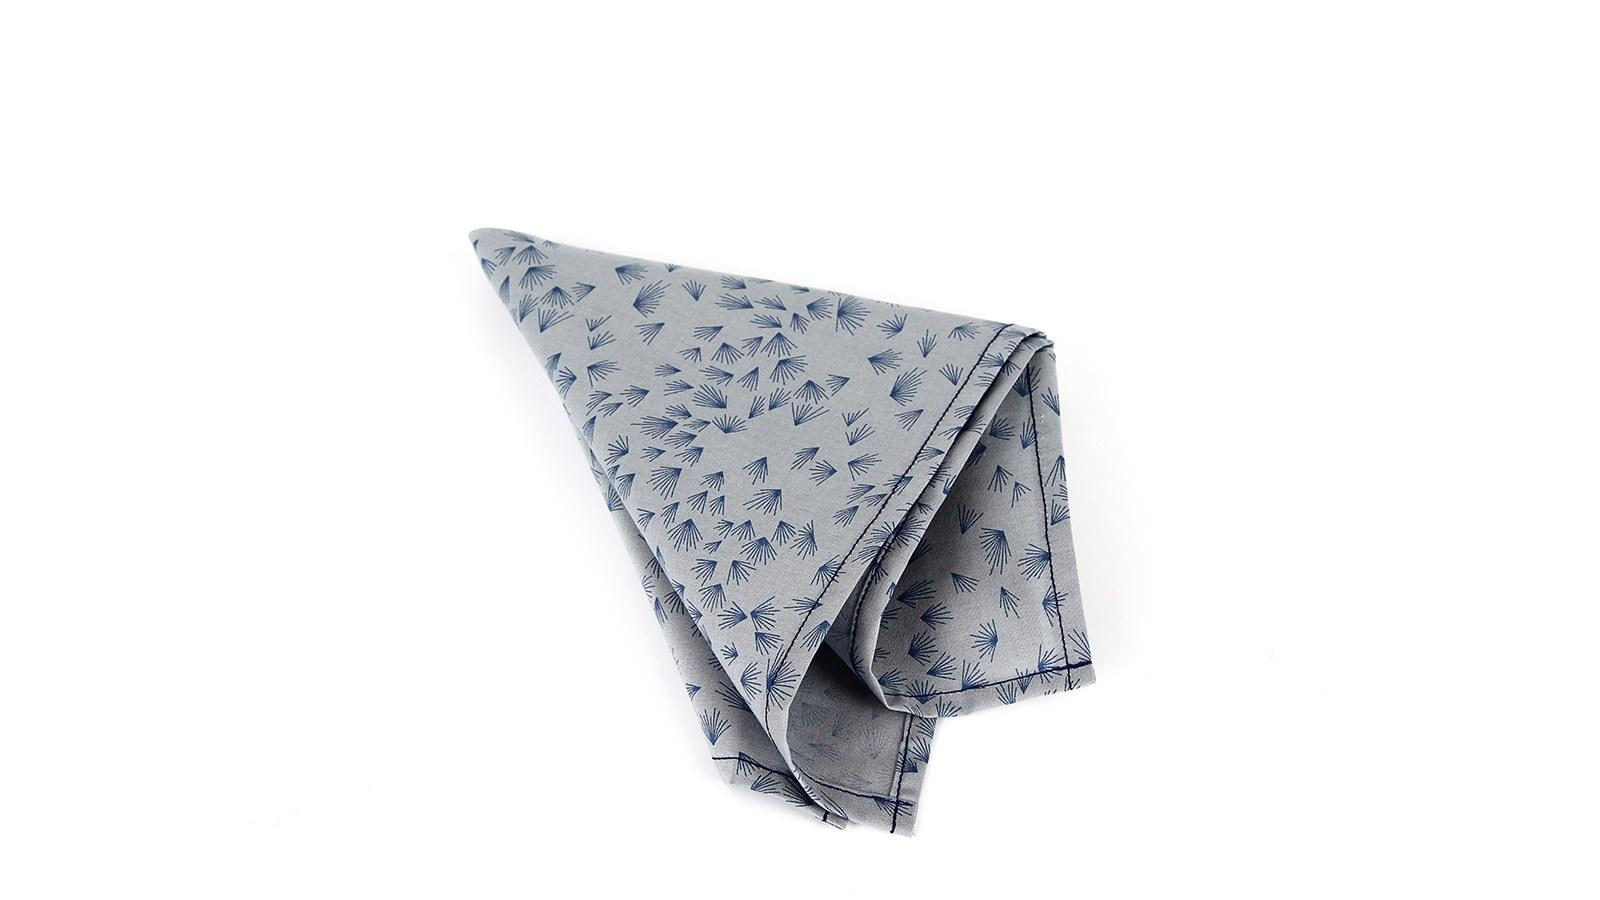 Light Blue Pocket Square With A Dandelion Pattern - slider image 1